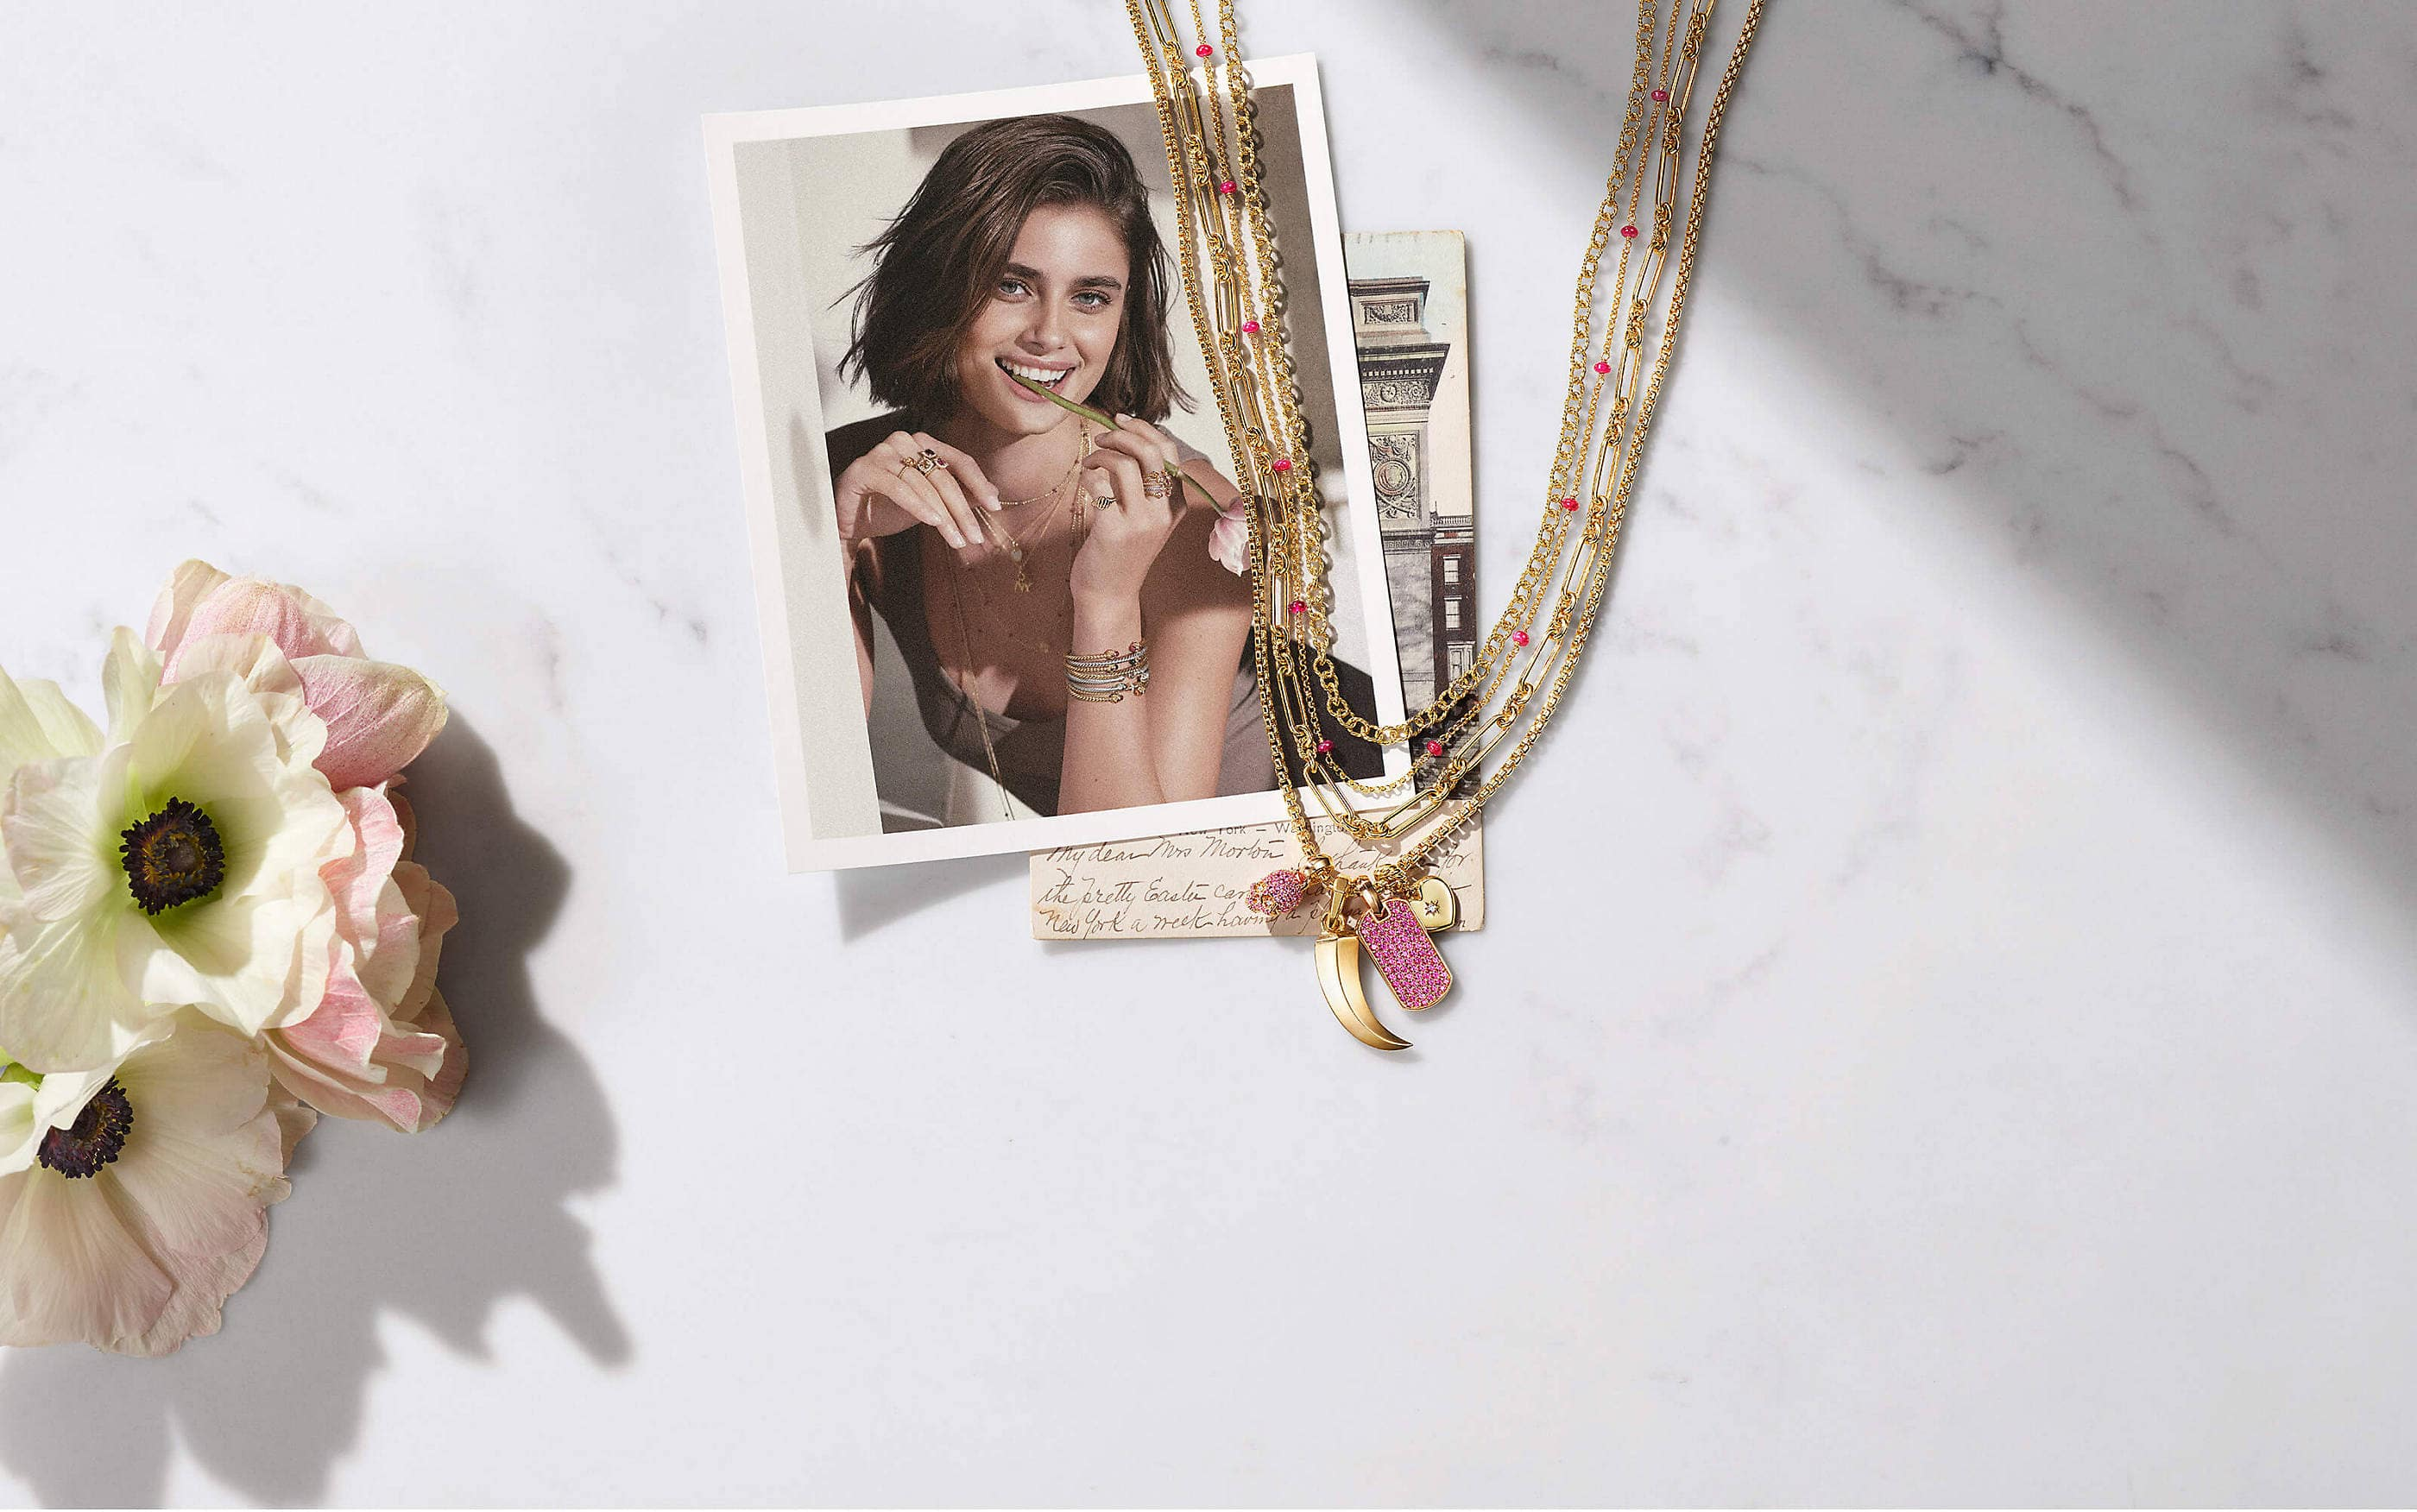 A color photo shows four David Yurman chain necklaces strung with three amulet pendants, all lying on a color photograph and a postcard on a marble table next to a pink-and-white flower. The women's jewelry is crafted from 18K yellow gold with or without pink sapphires. The pendants come in various shapes such as a skull, a dagger and a dog tag. The photograph on the table shows model Taylor Hill holding a pink-and-white flower in her hand with the stem in her mouth. She's angled behind a white wall and wearing multiple David Yurman necklaces, rings and bracelets stacked together in 18K yellow gold or sterling silver with various colored gemstones.